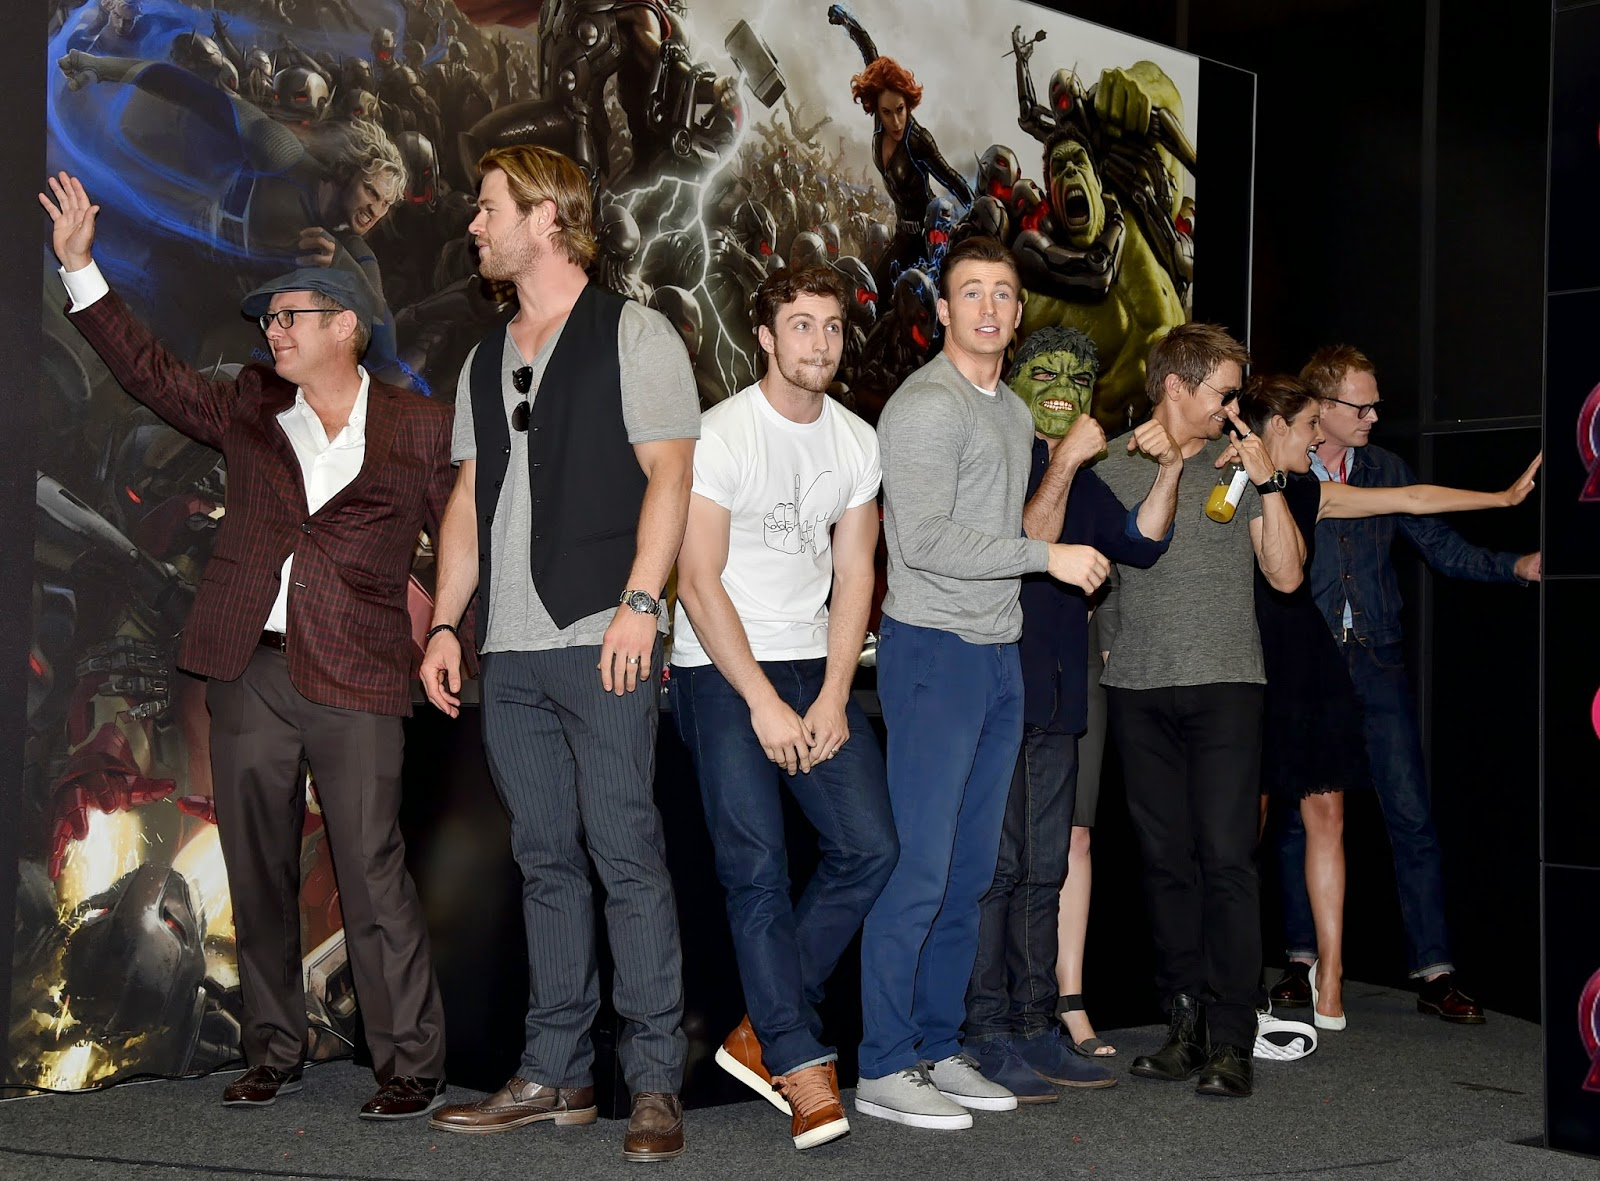 b9ed0a8d4f9 Take a look at some photos from Marvel s Comic-Con Signing Booth for  Avengers  Age of Ultron! Posted by Sasaki Time ...